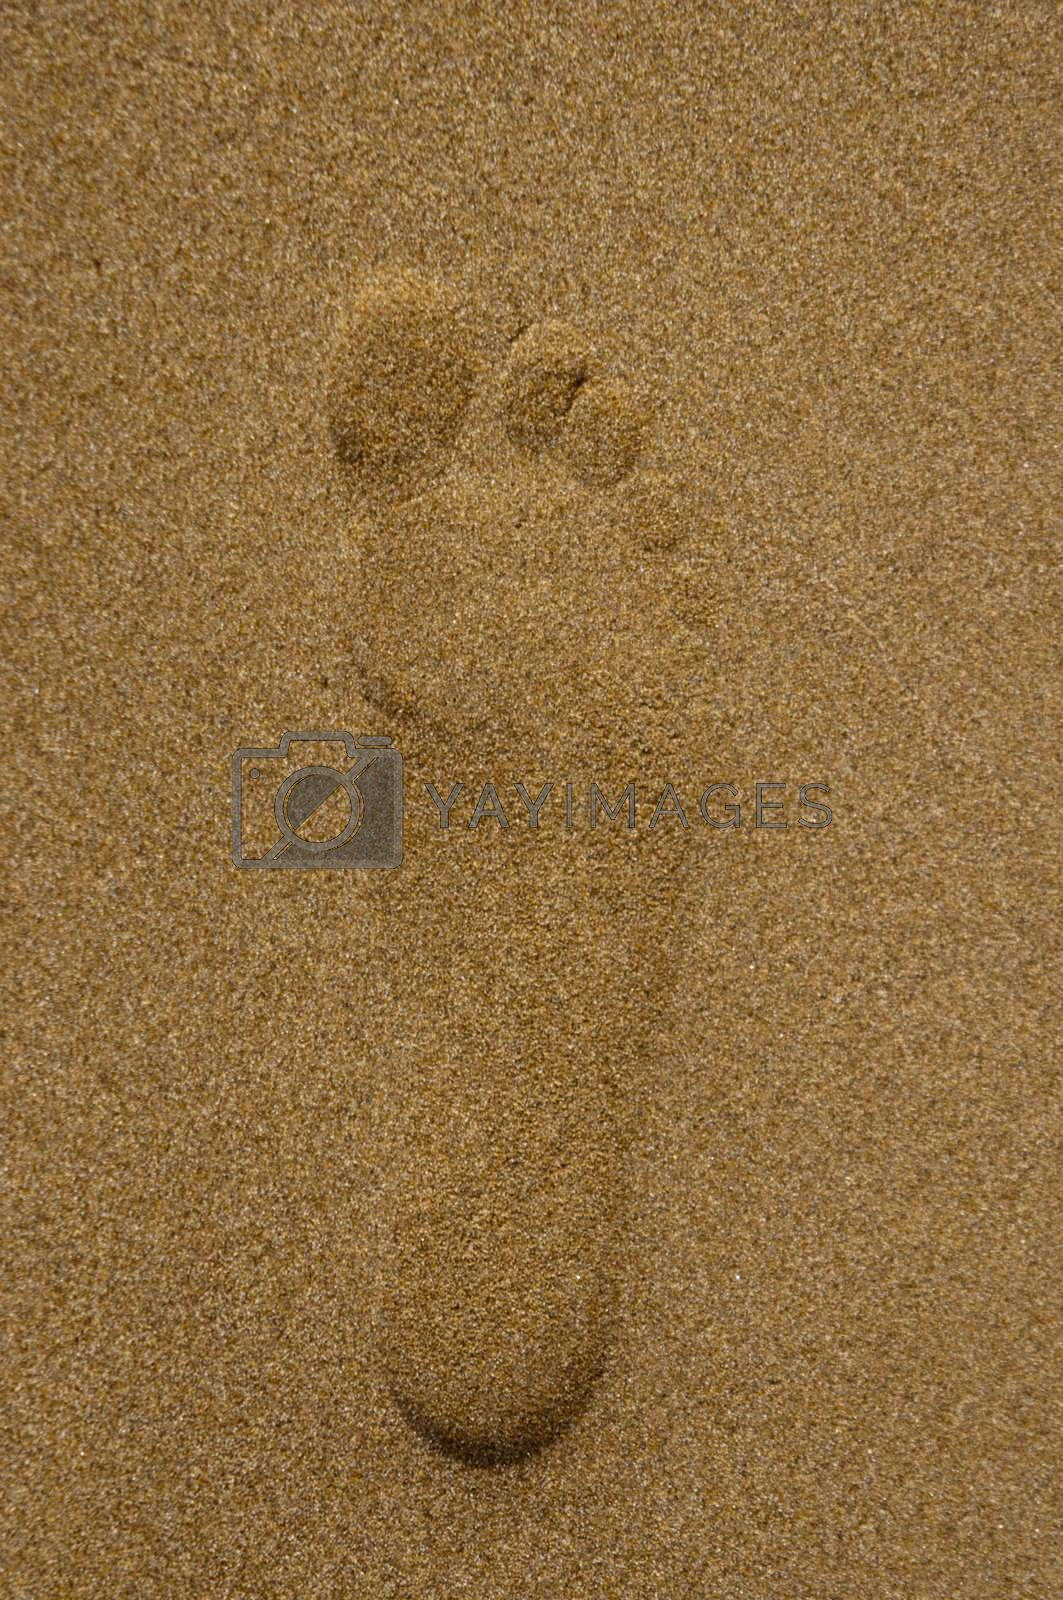 High resolution image. Trace of a foot of the person on sand.